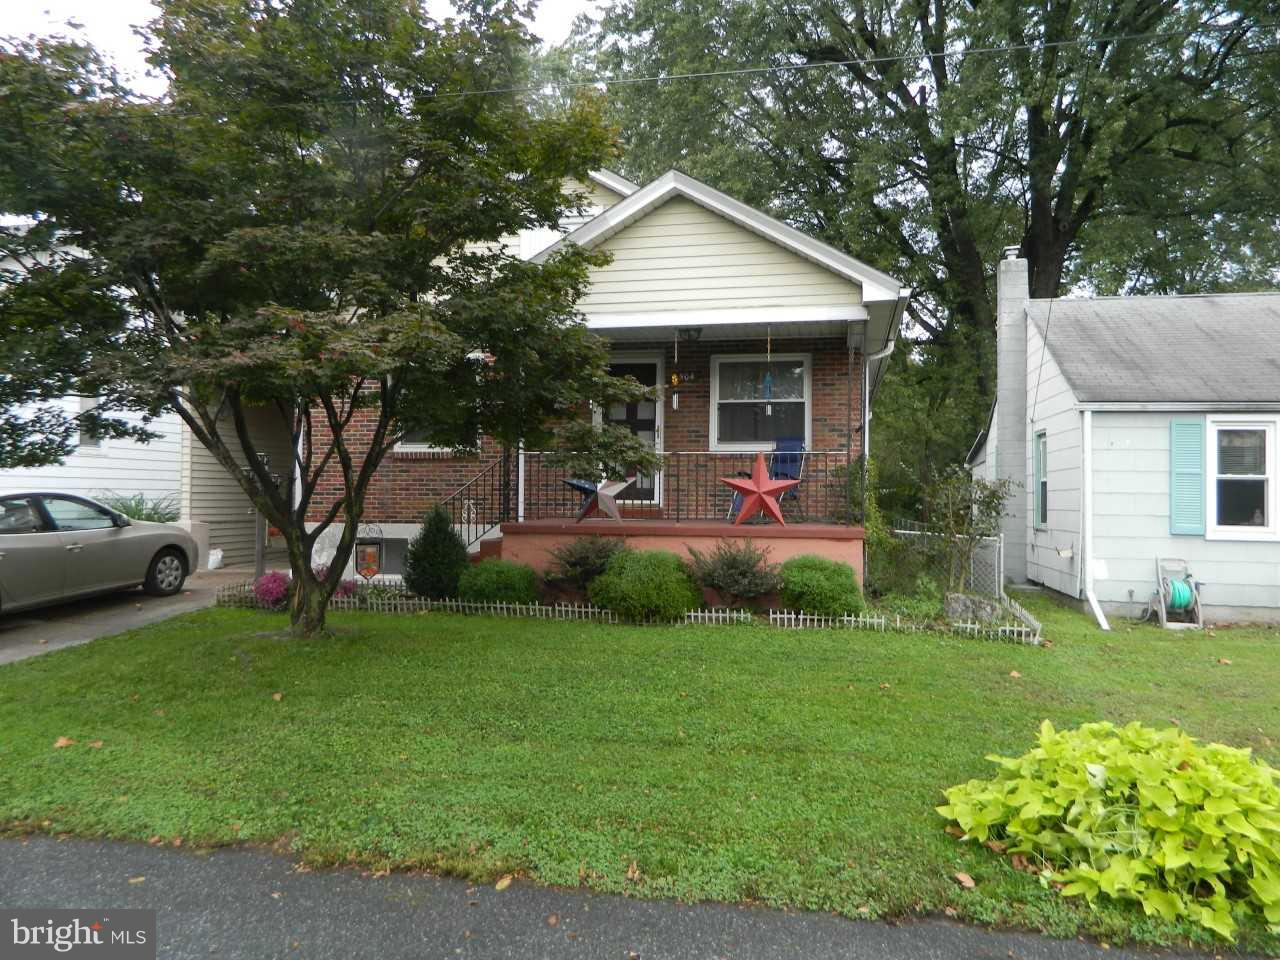 504 WILLOW STREET, HIGHSPIRE, PA 17034